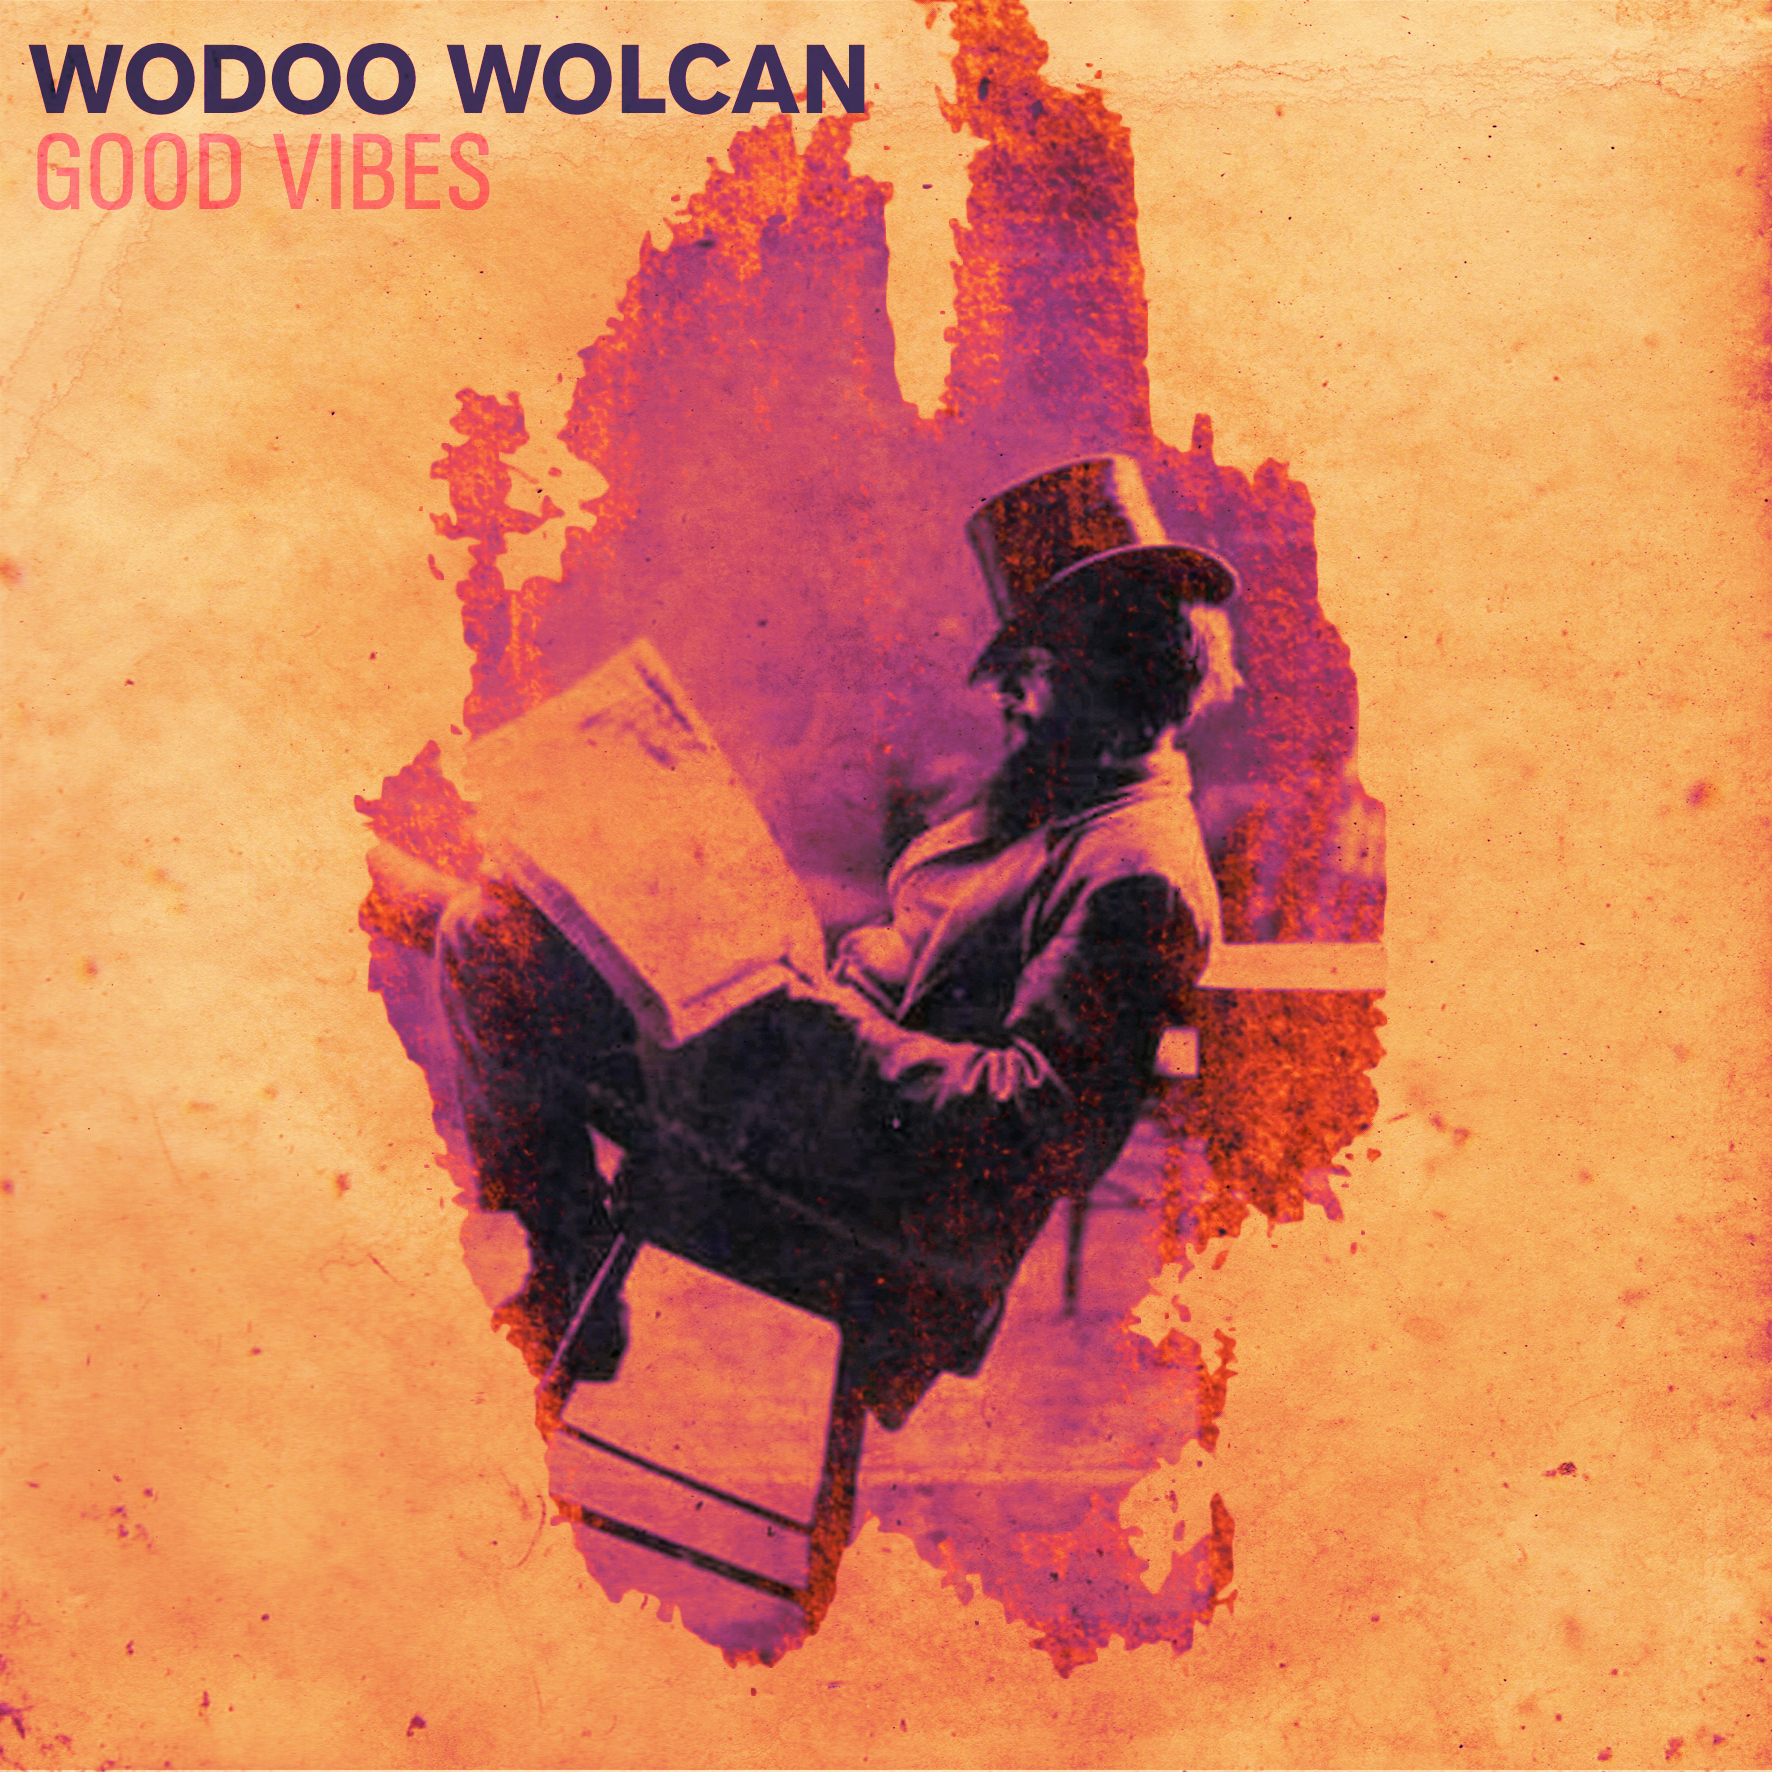 Free Download: Wodoo Wolcan – Good Vibes